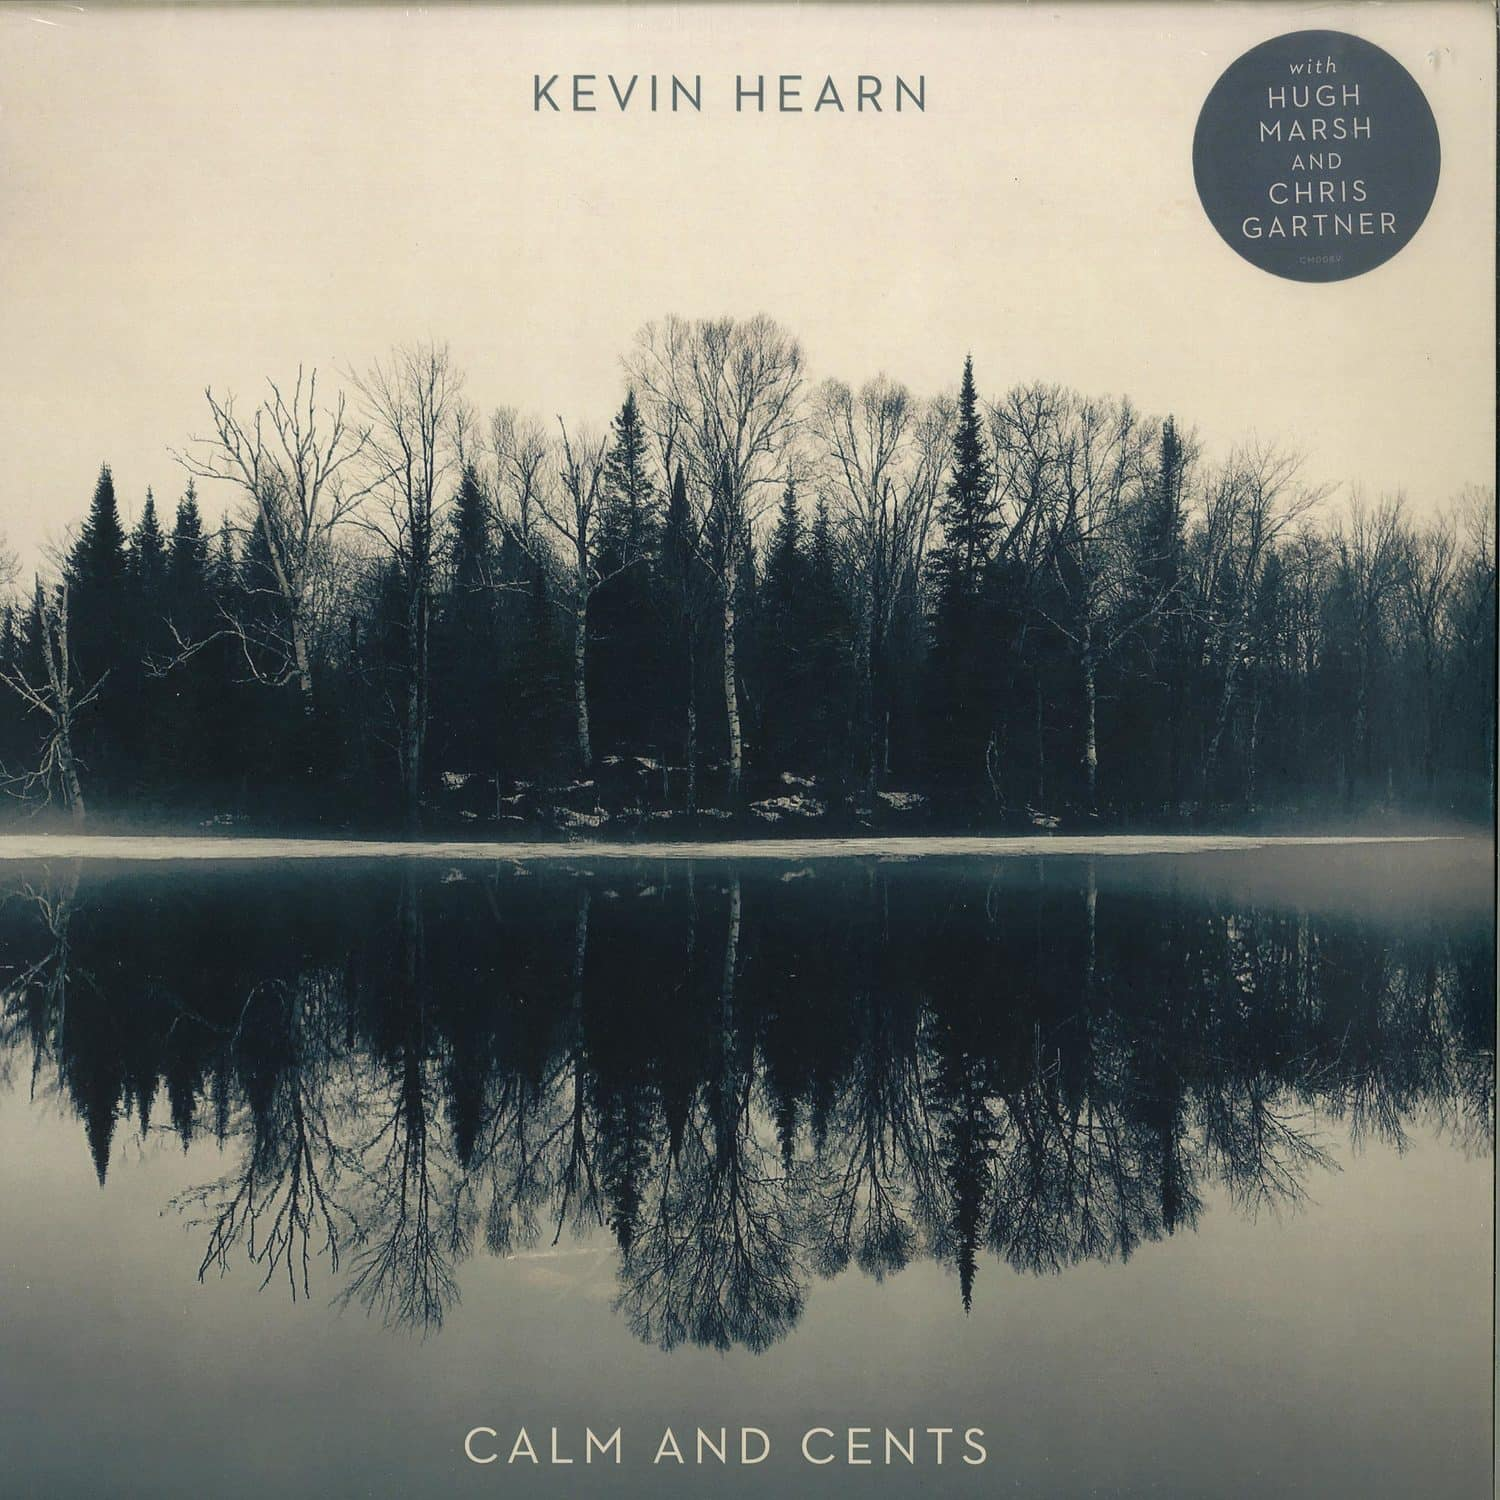 Kevin Hearn - CALM AND CENTS